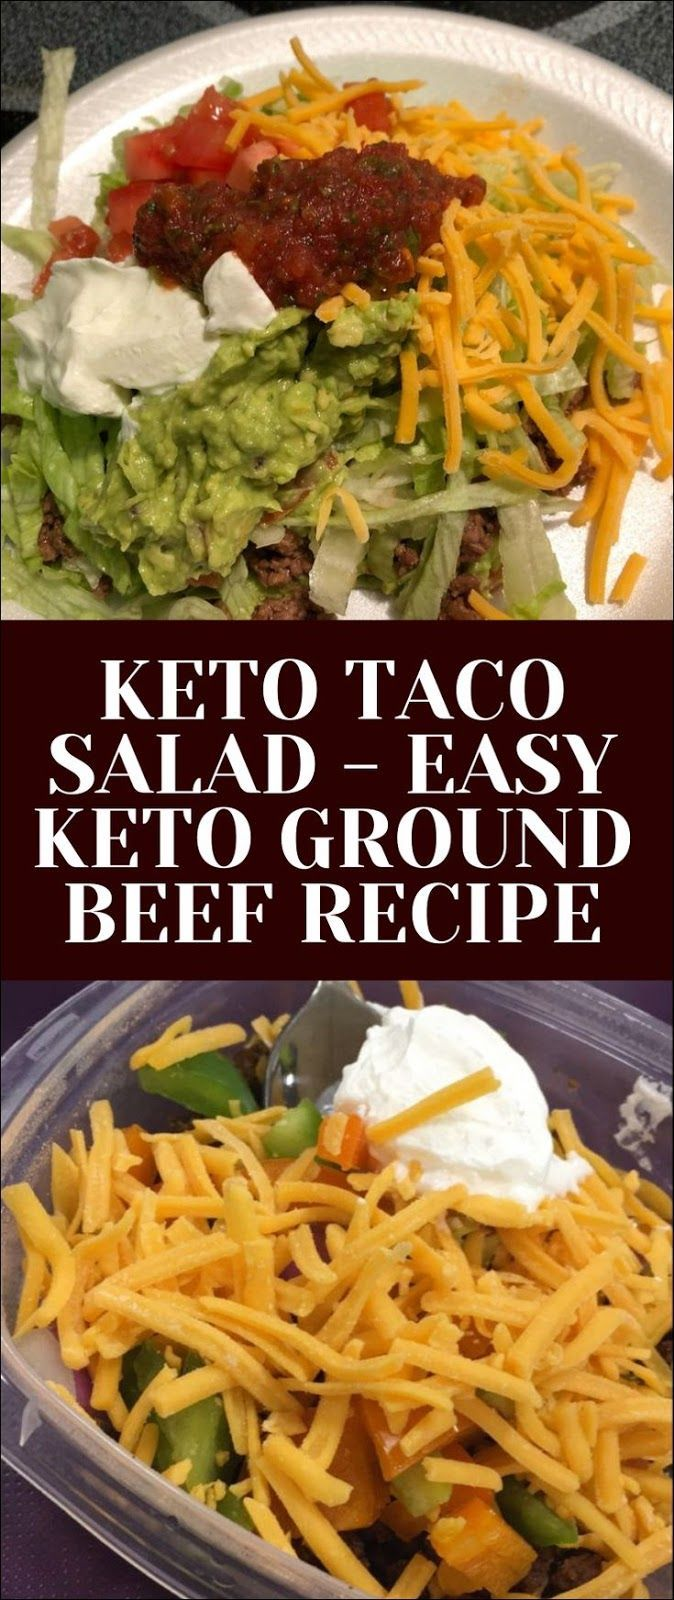 Keto Taco Salad Easy Keto Ground Beef Recipe Keto Taco Salad Ground Beef Paleo Recipes Ground Beef Recipes